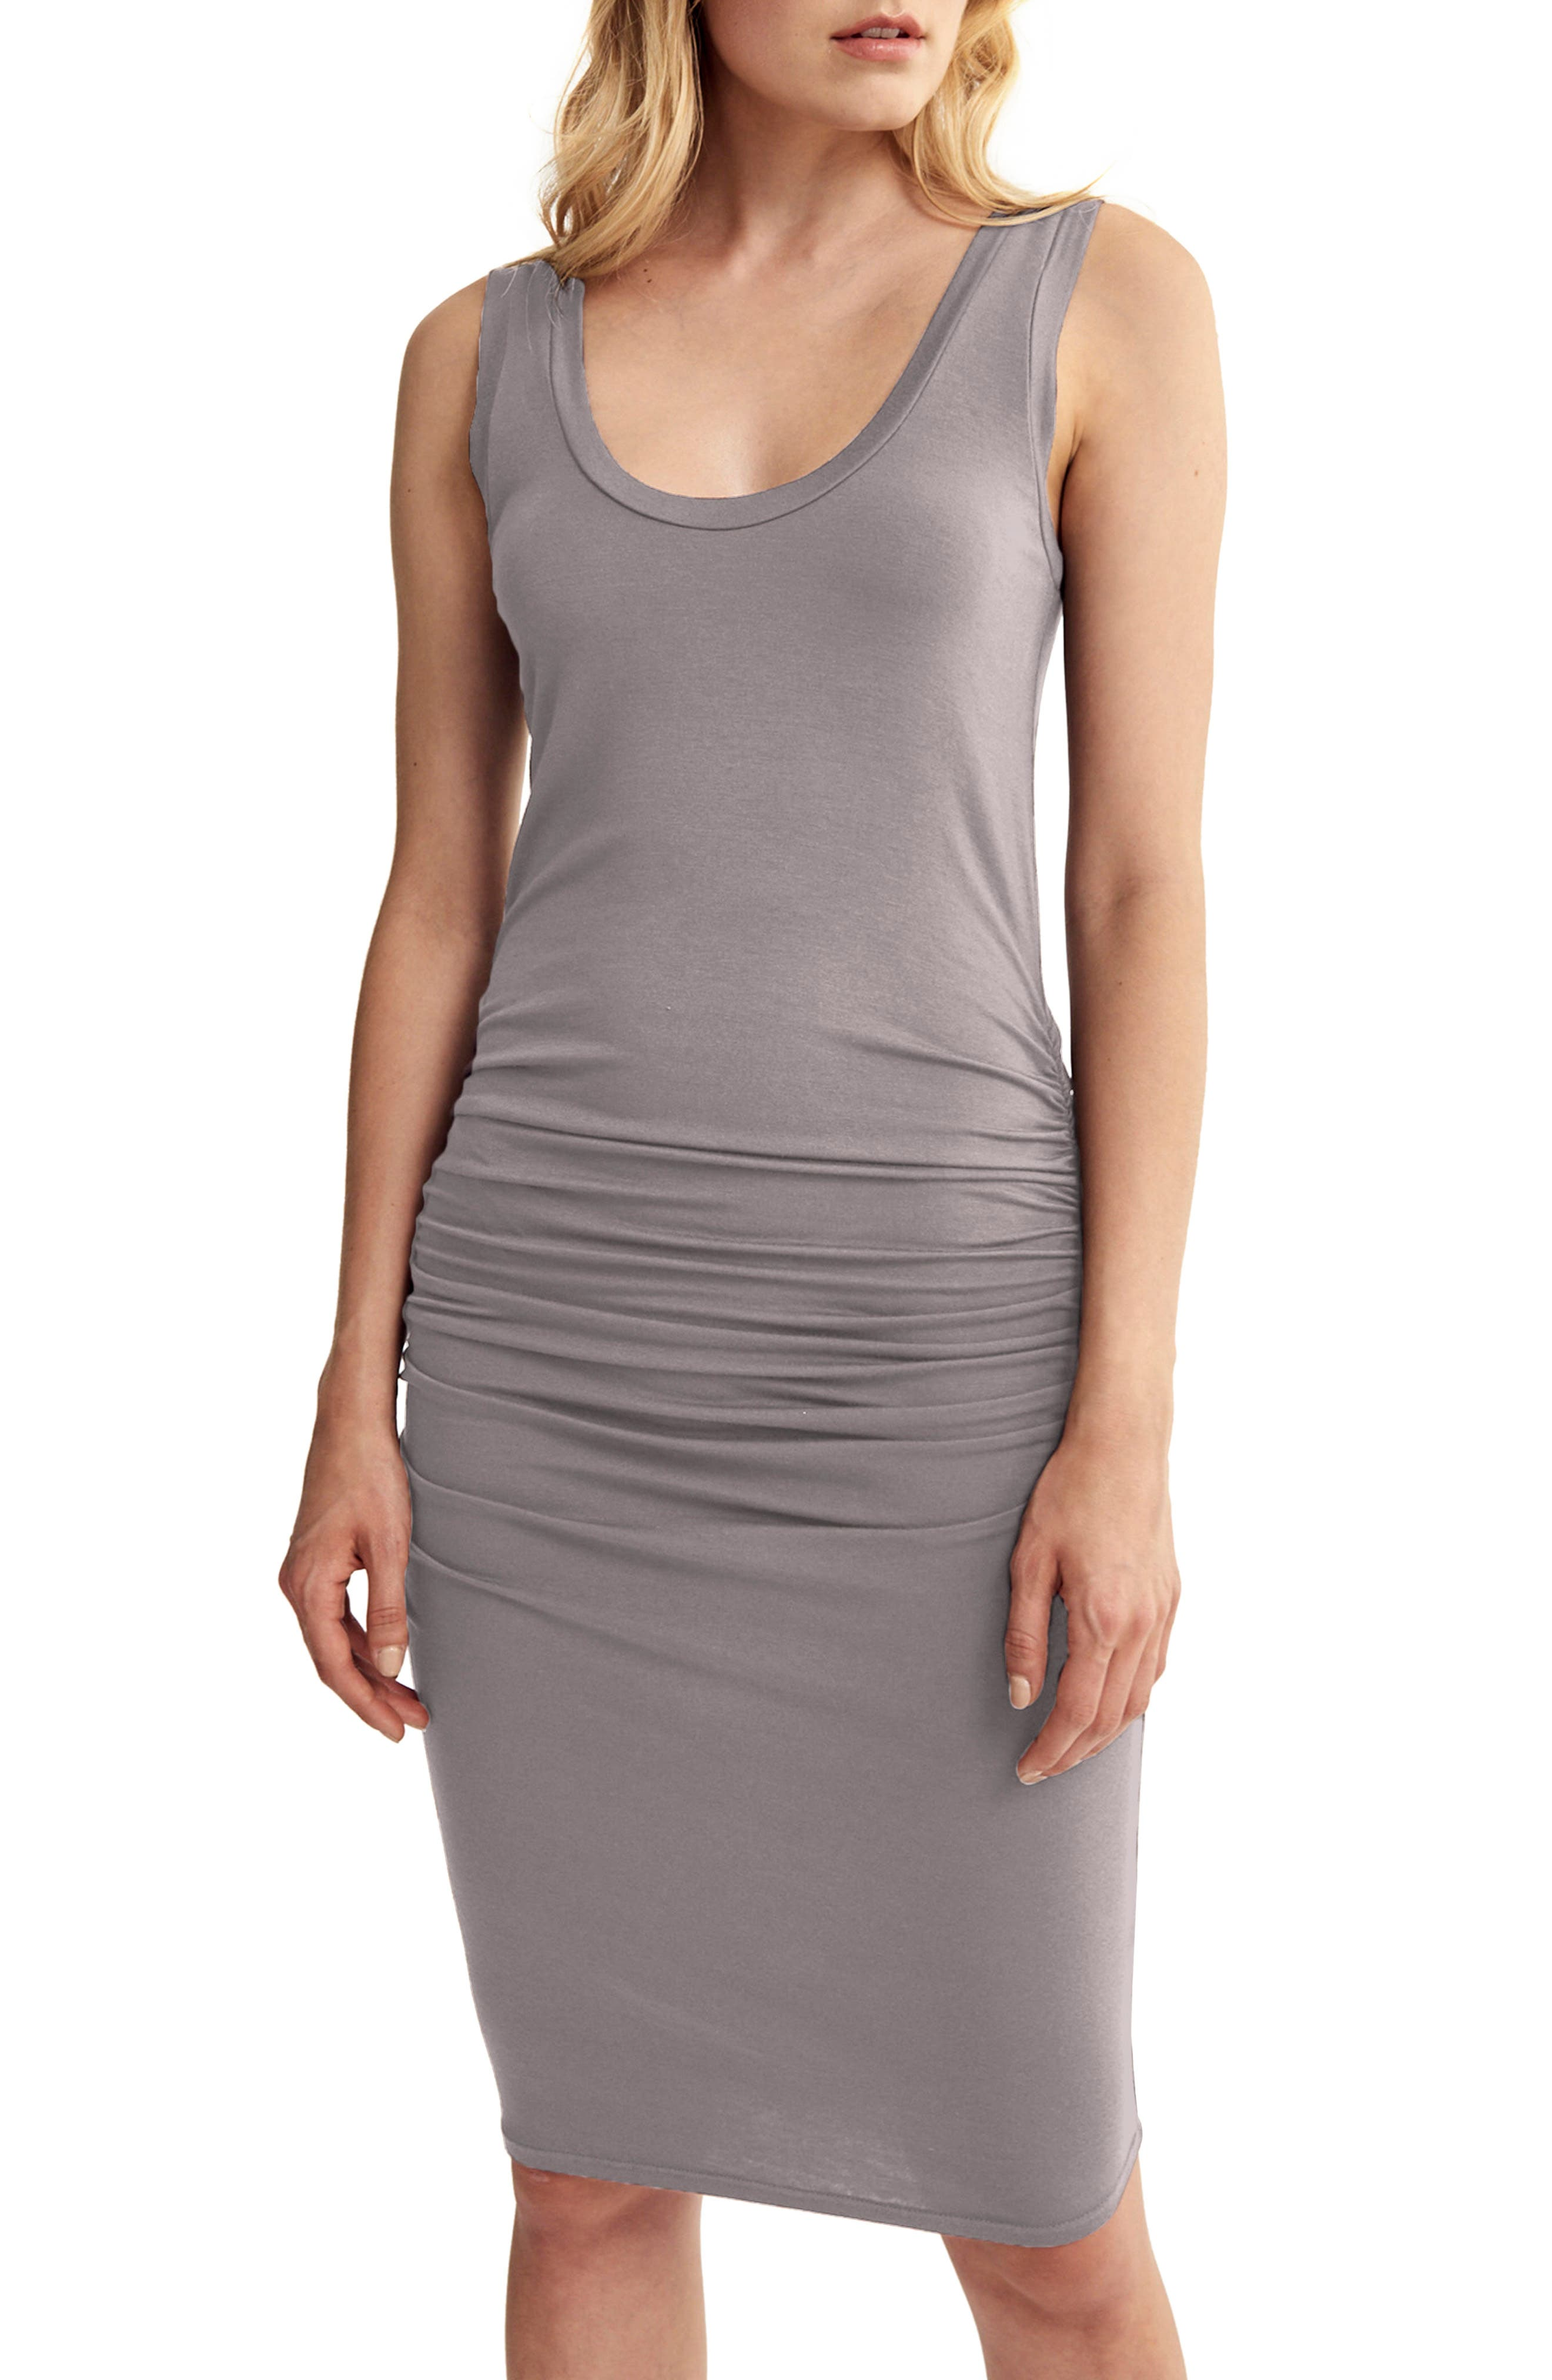 Alternate Image 1 Selected - LAmade 'Frankie' Ruched Tank Dress